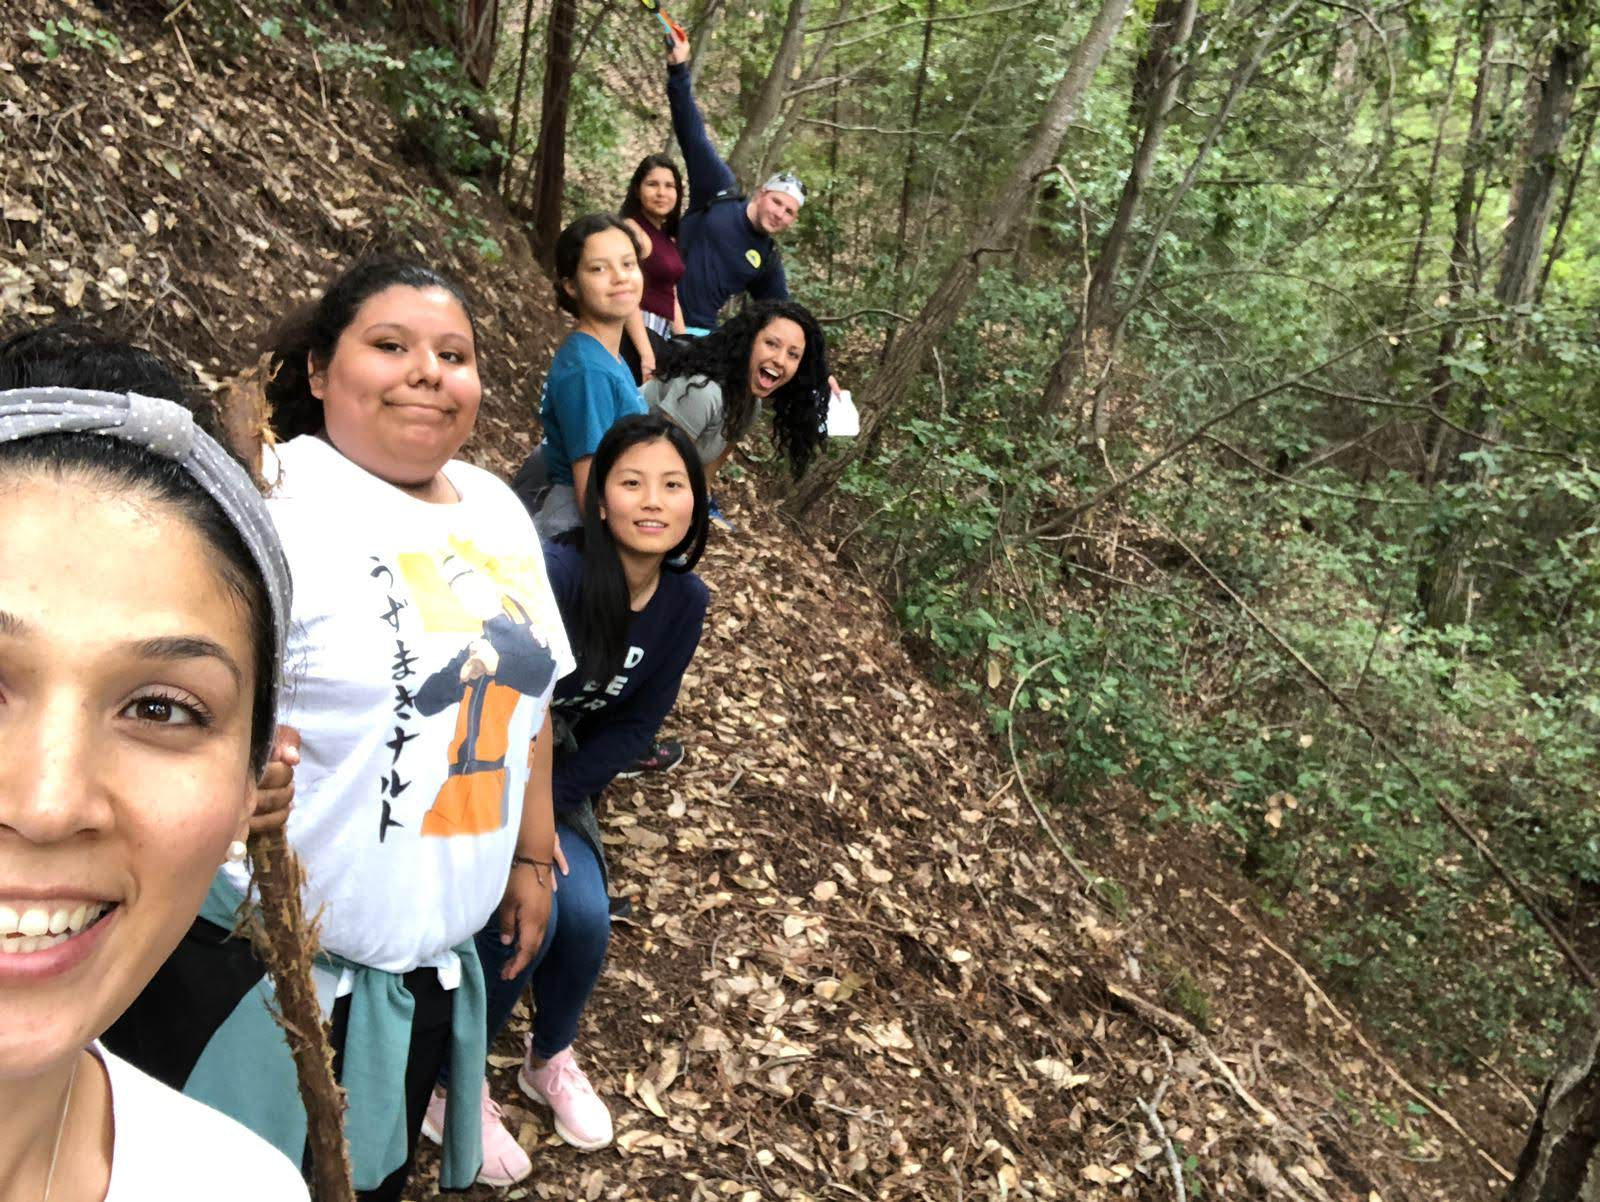 LiT students and volunteers pose for a picture during a hike.